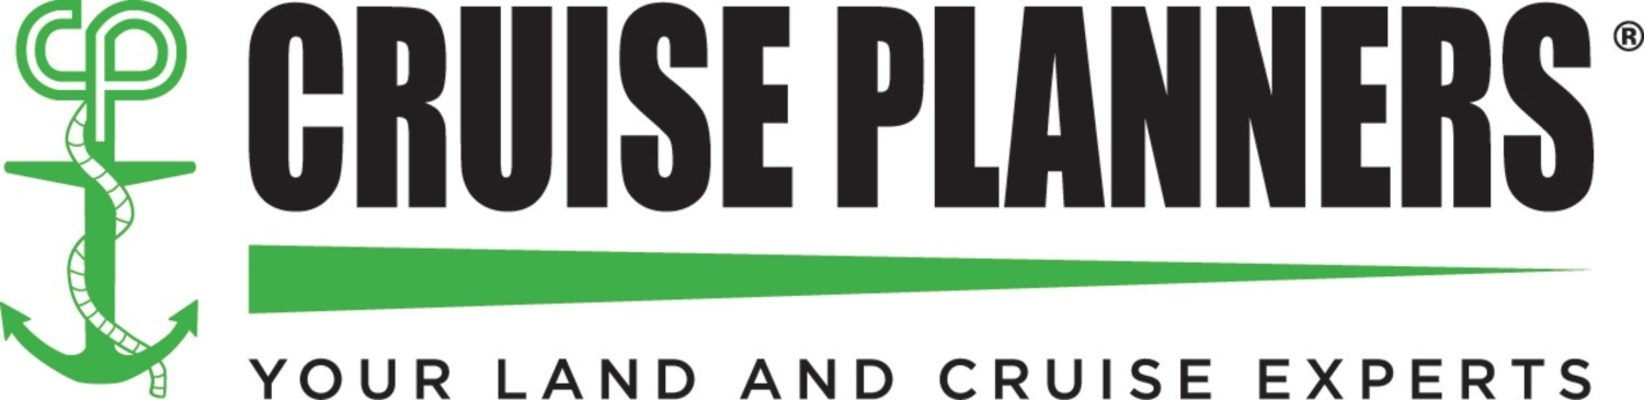 Cruise Planners Logo